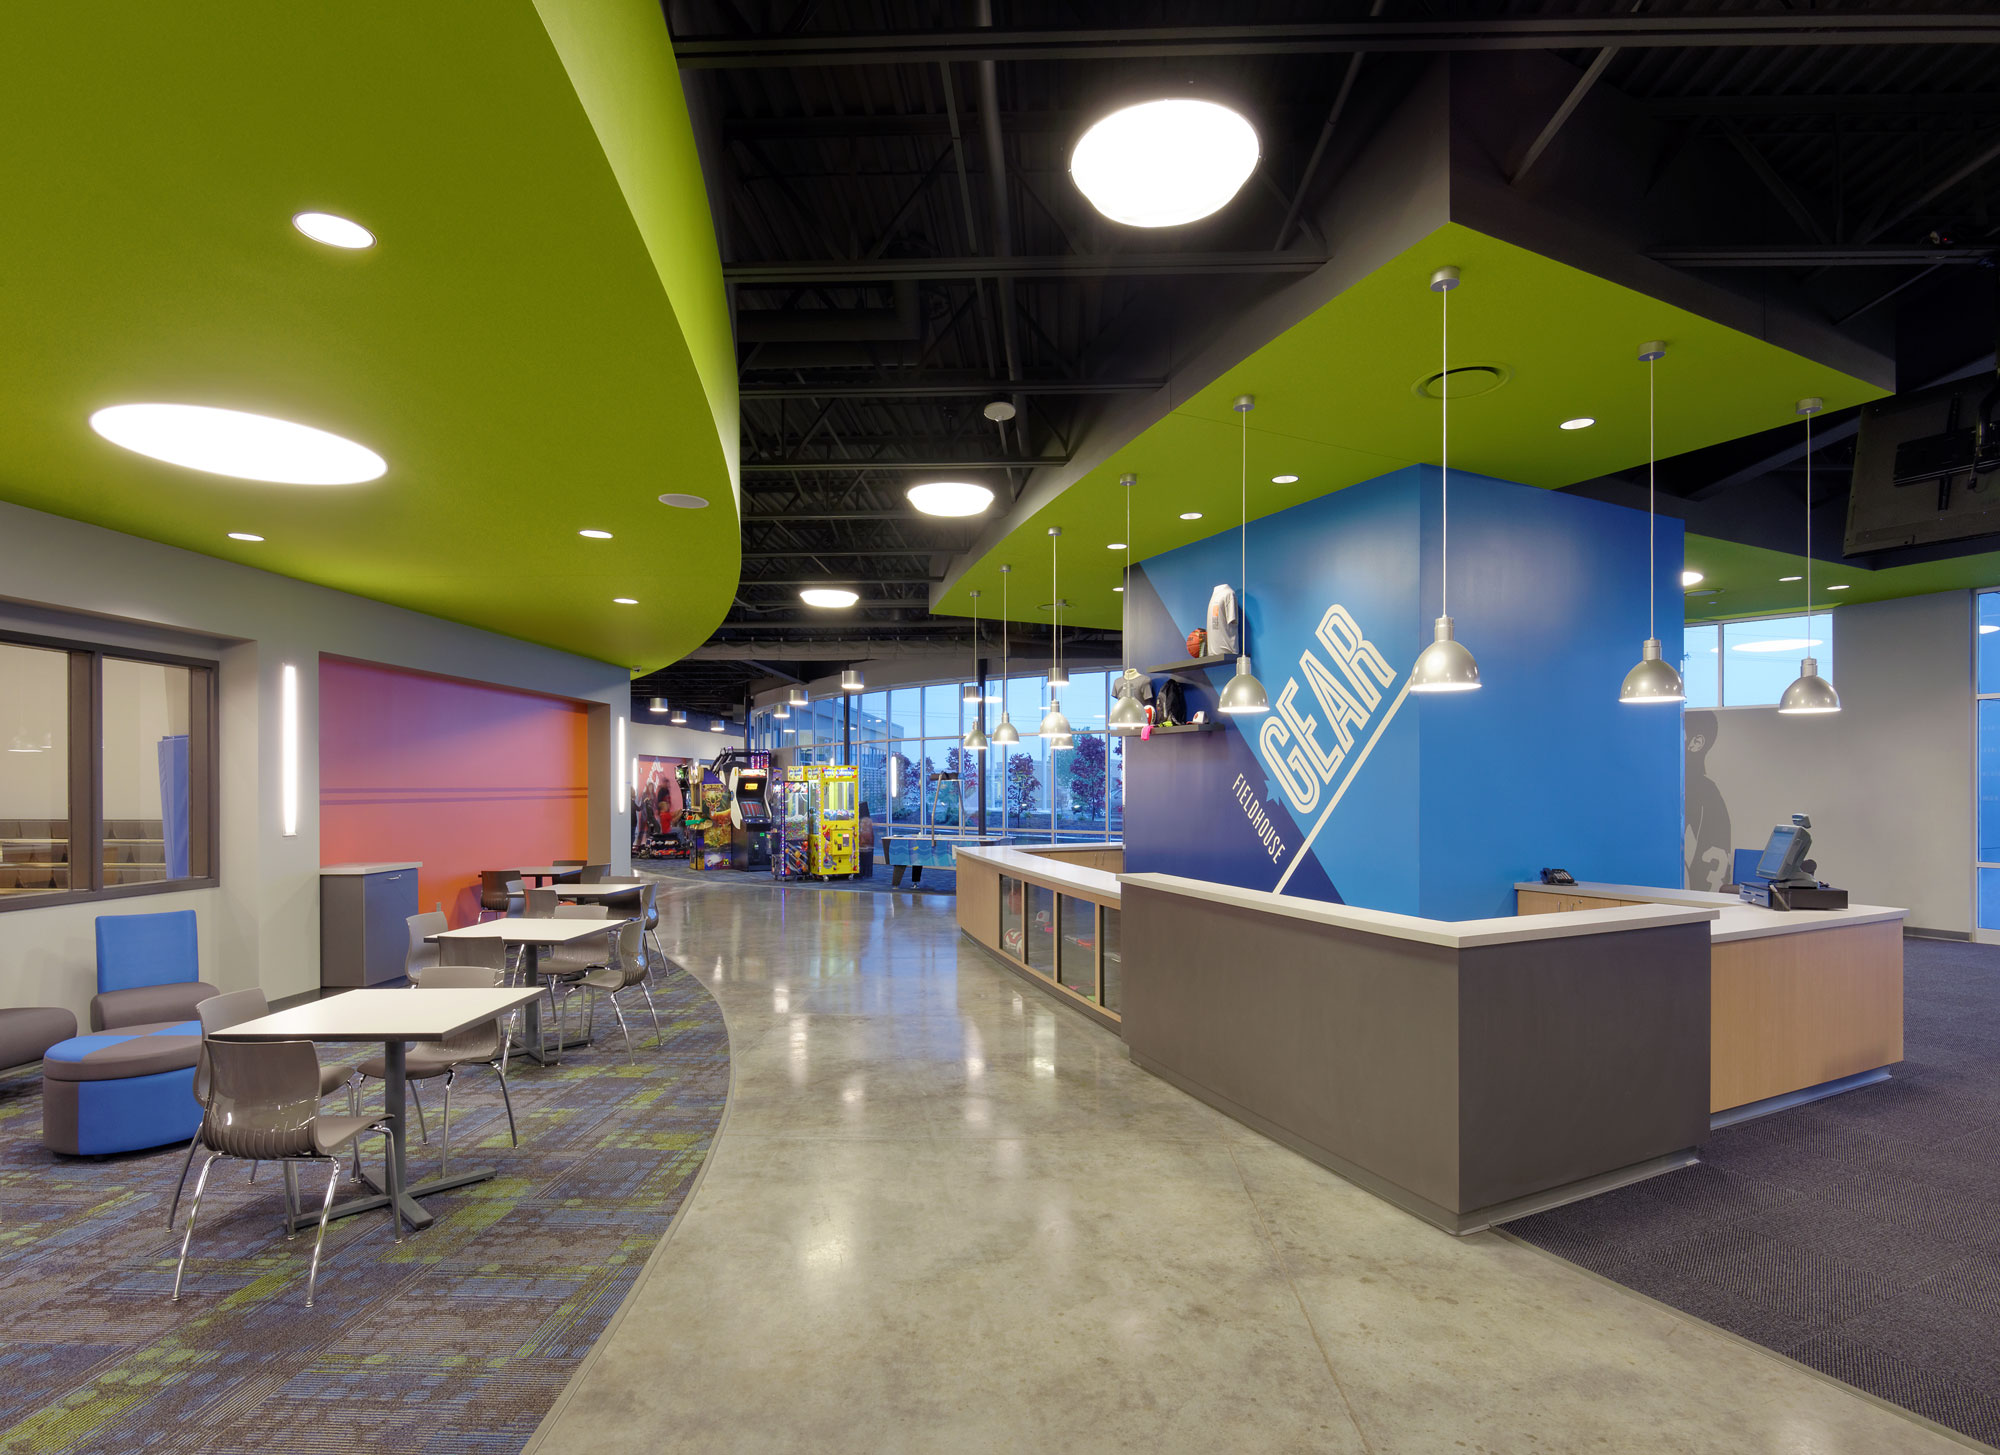 Fieldhouse-Sportscenter-H-Design-Interior-04.jpg